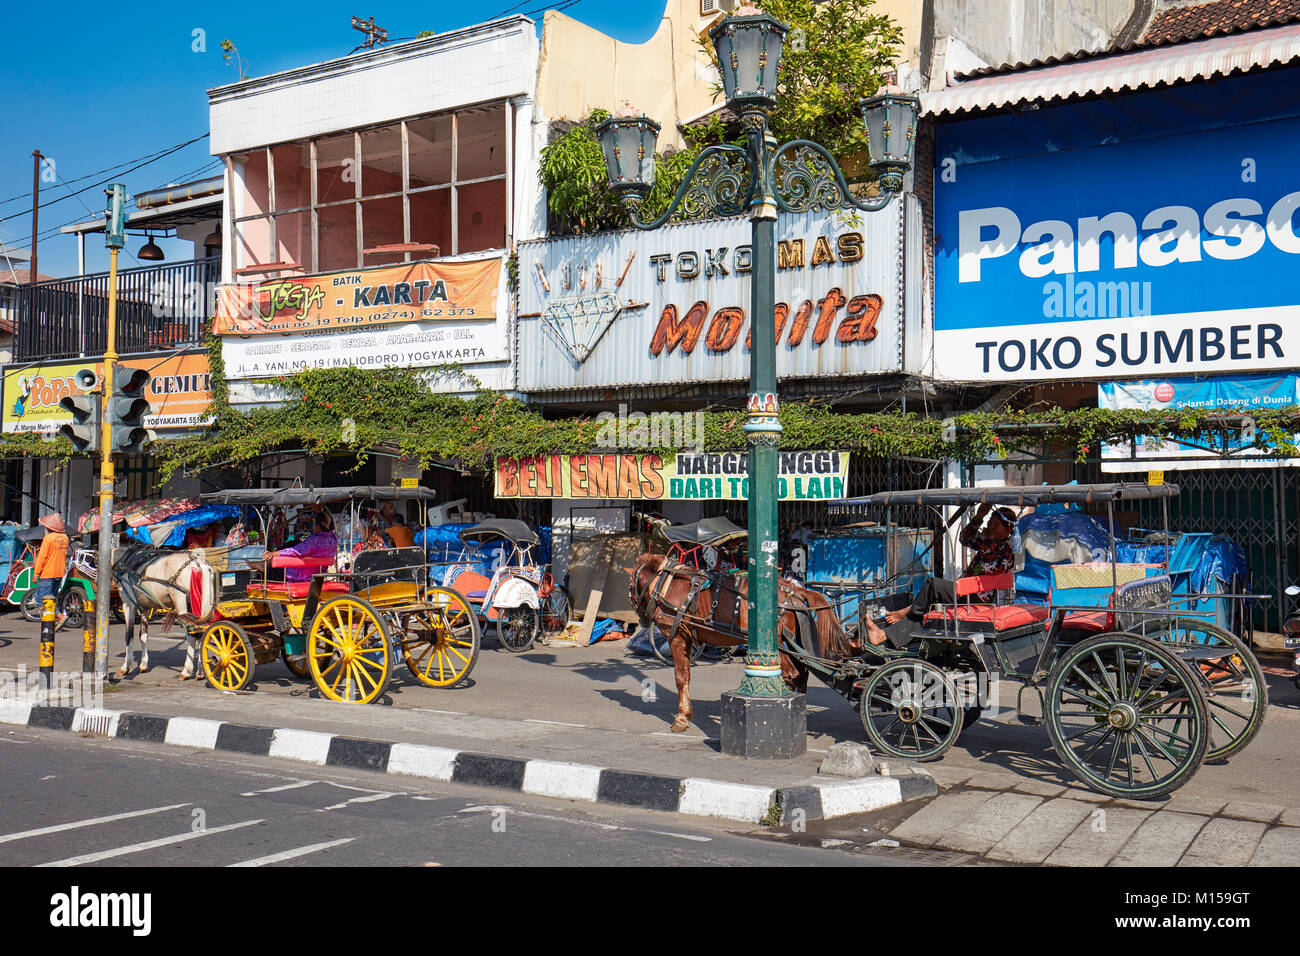 Horse-drawn carriages waiting for customers on Malioboro Street. Yogyakarta, Java, Indonesia. - Stock Image